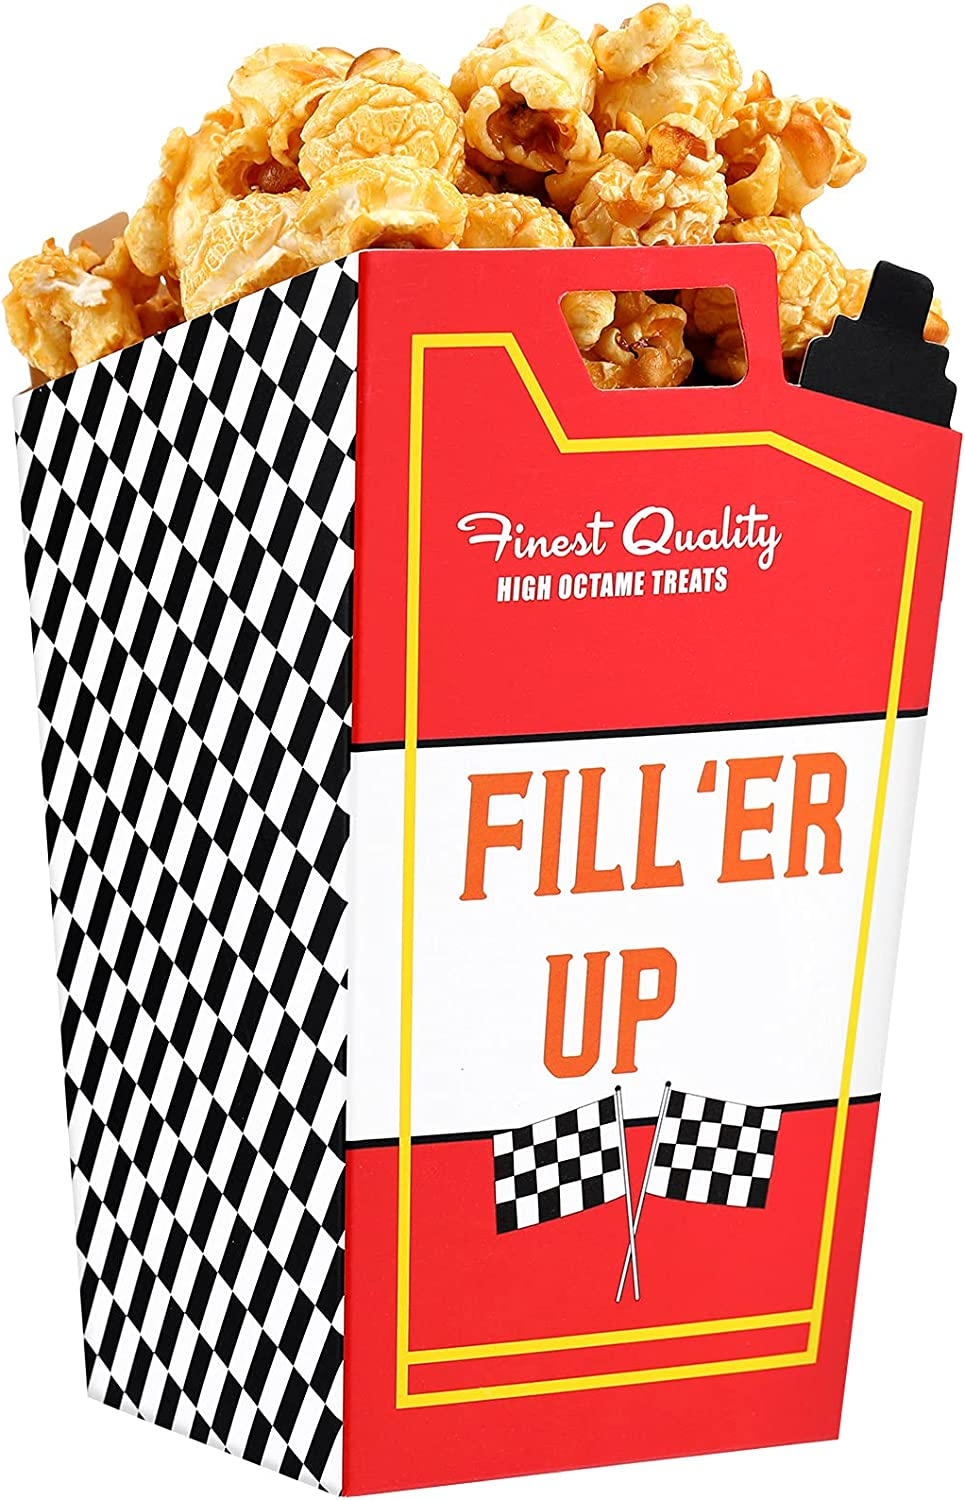 24 Pieces Race Car Fuel Can Popcorn Treat Boxes, Racing Popcorn Favor Boxes, Candy Cookie Container Goody Boxes for Birthday Baby Shower Bridal Shower Race Car Theme Party Favors Decoration